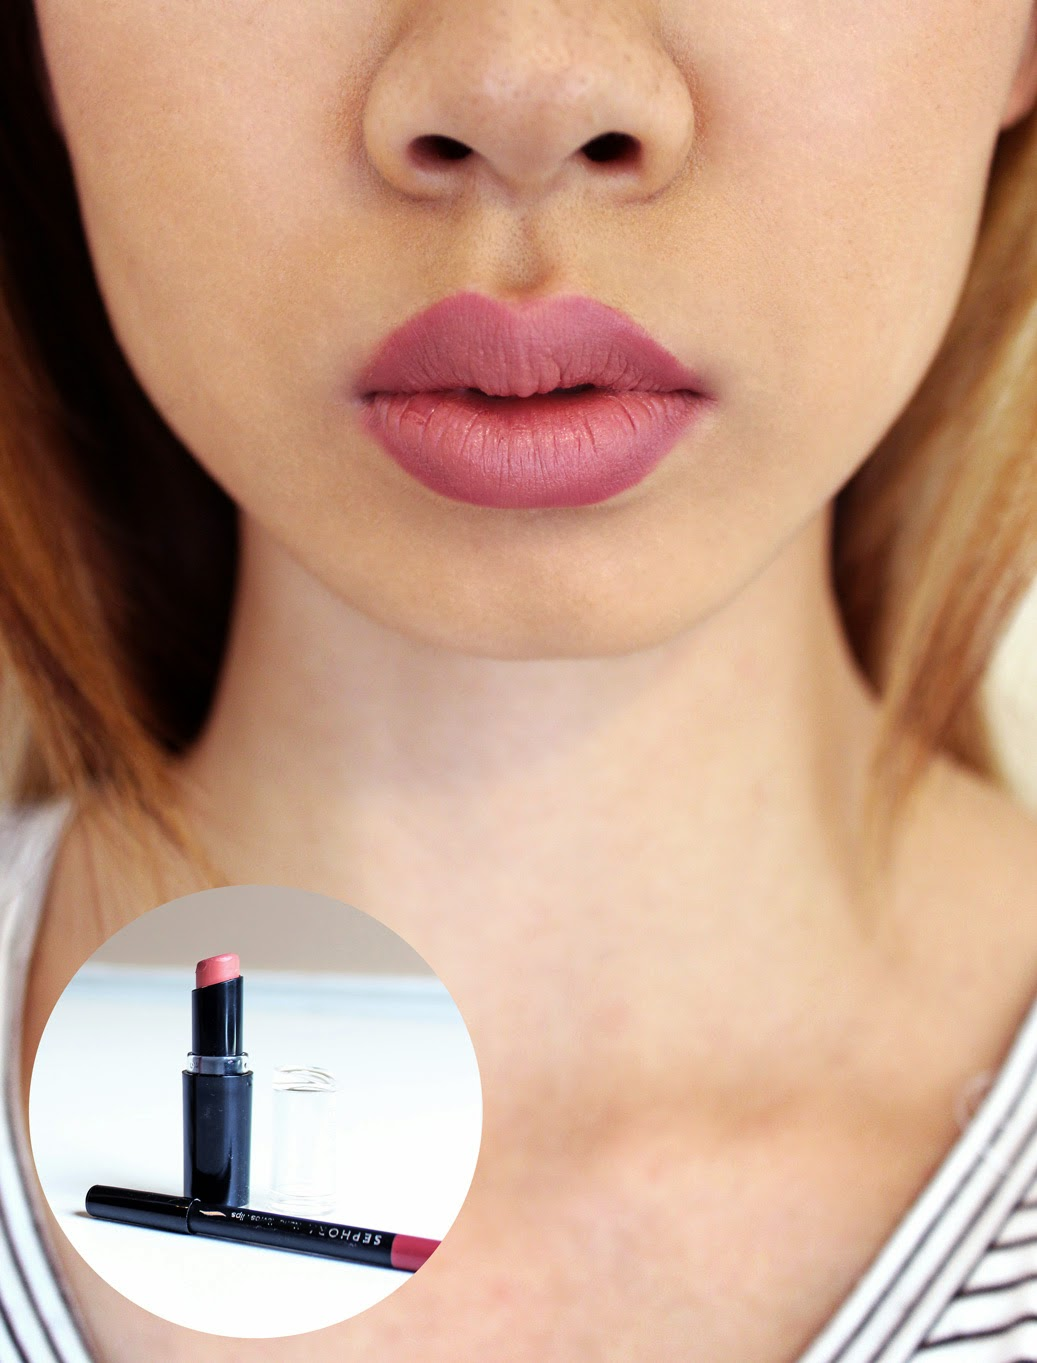 Kylie Lip Stain: Kylie Jenner Lip Color: How To Get The Look Feat. High End